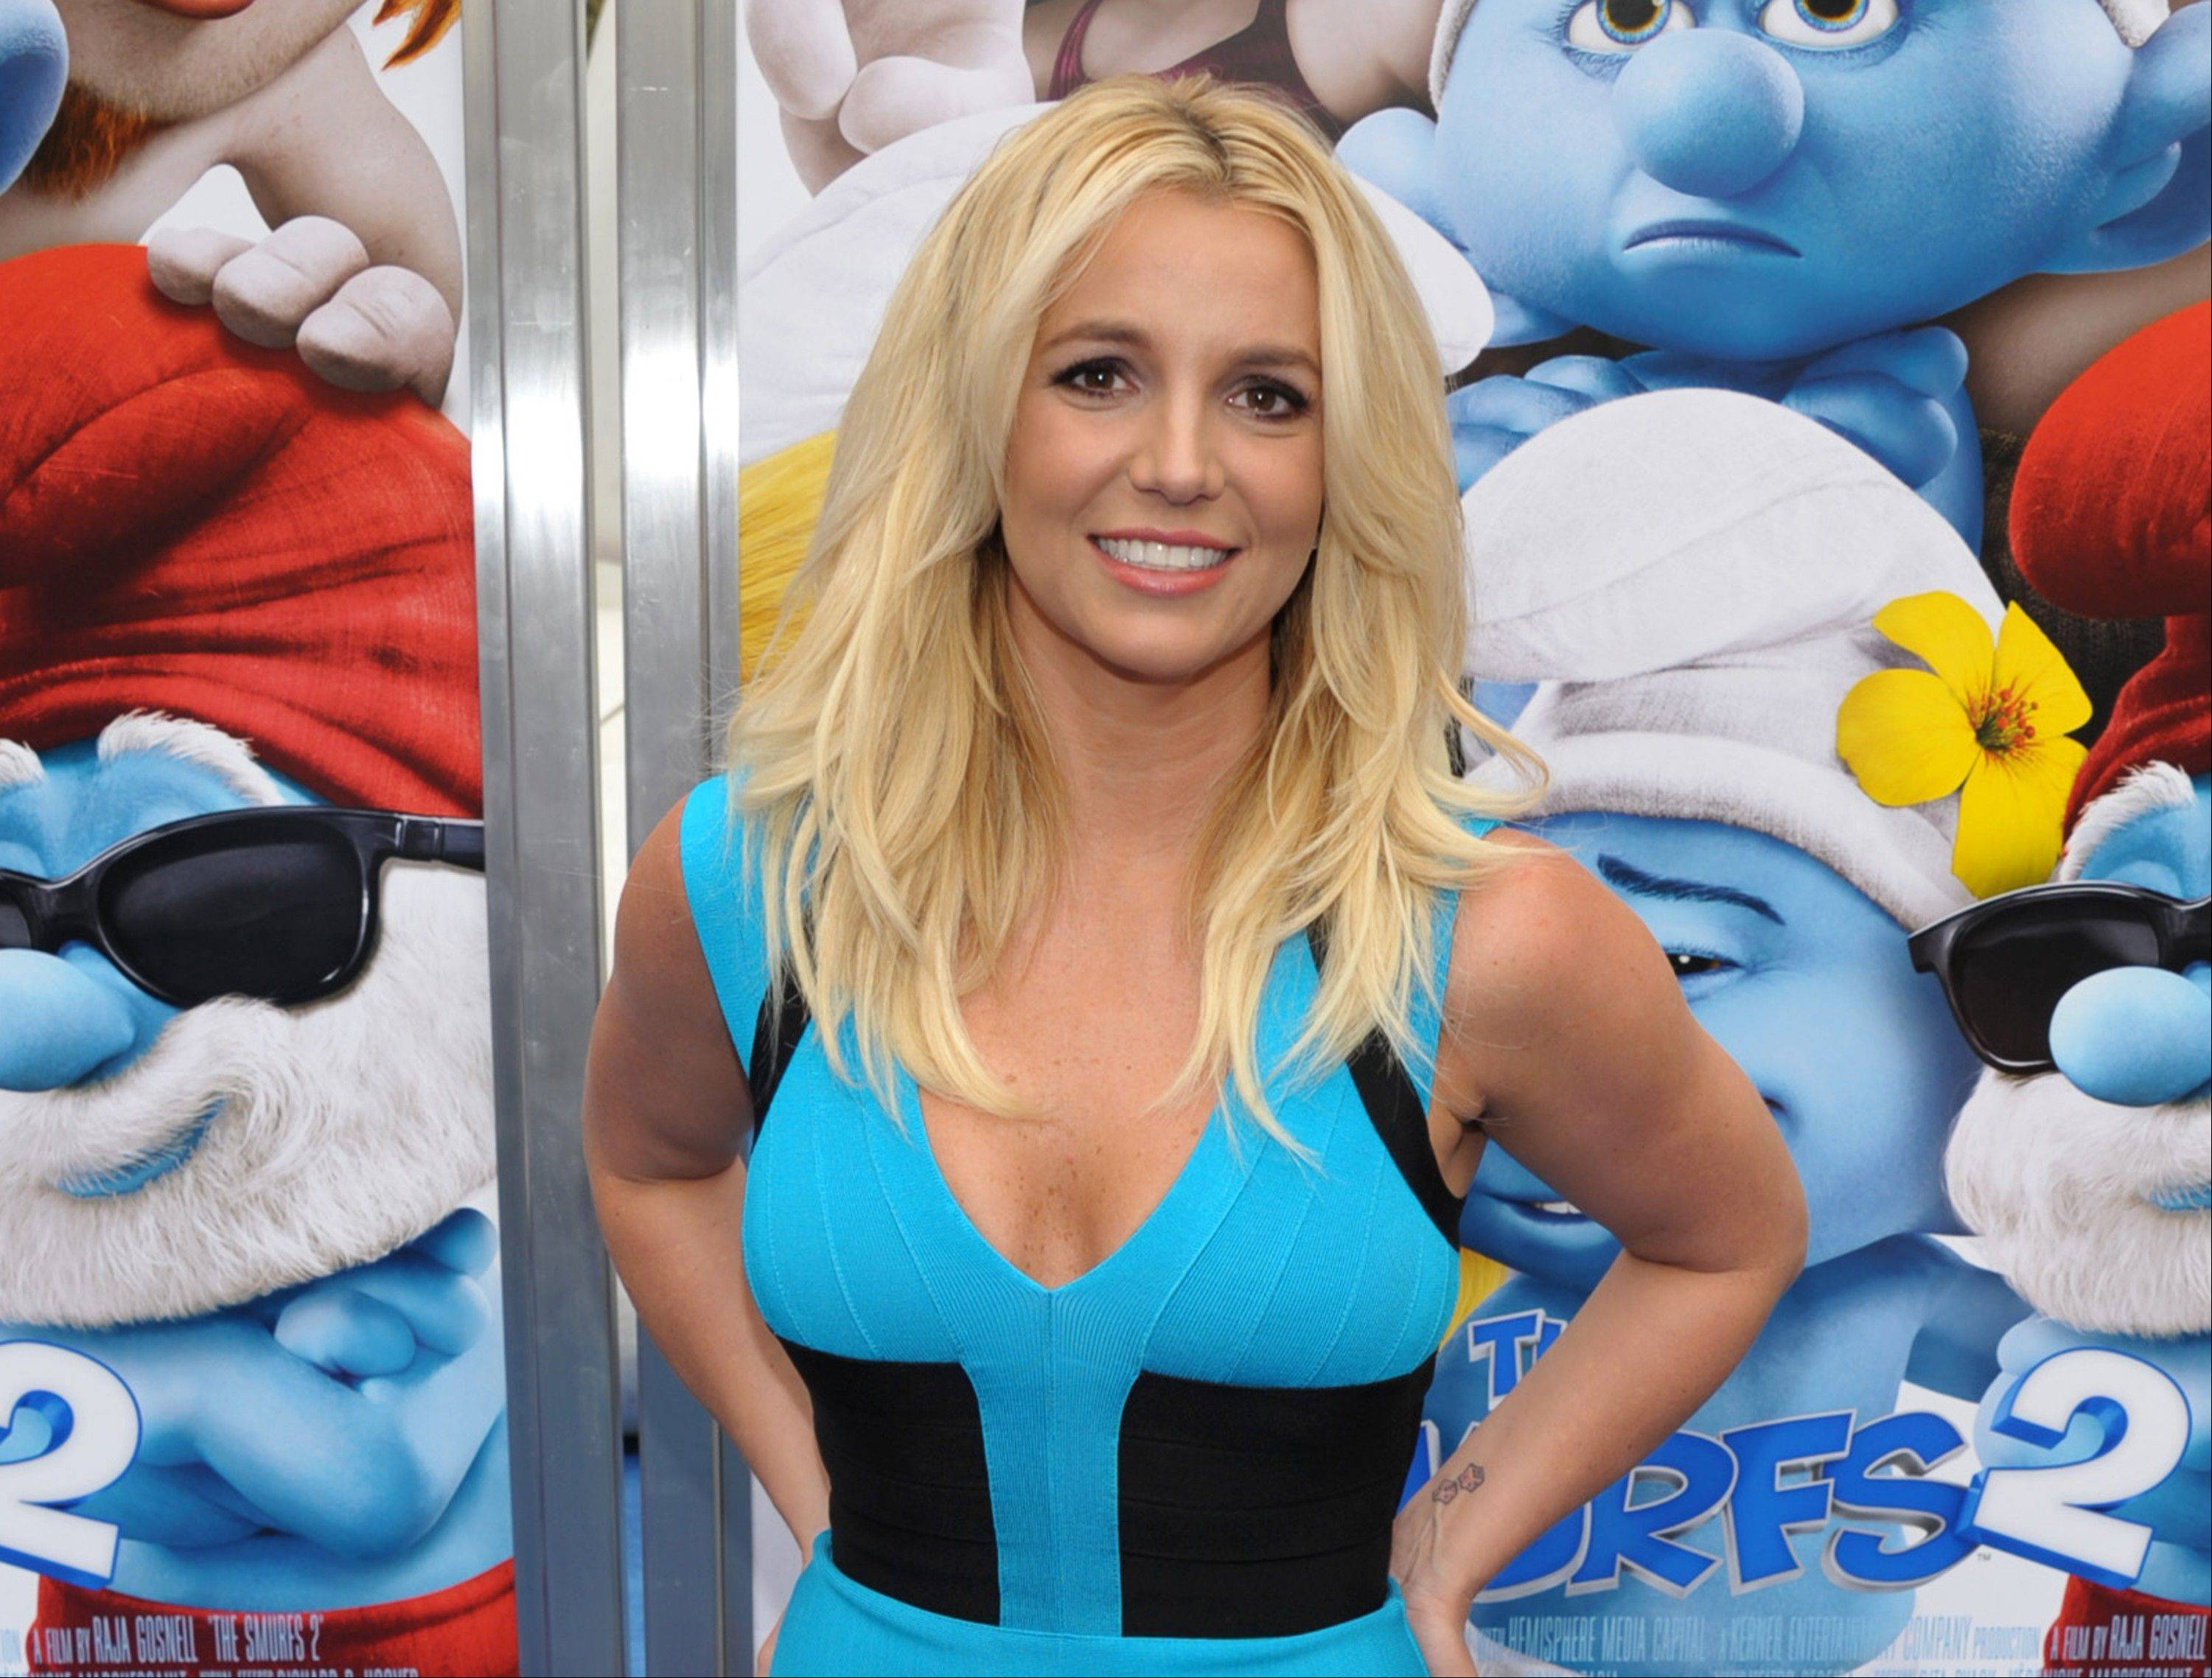 Britney Spears announced a 16-date residency at Planet Hollywood Resort & Casino on ABC�s �Good Morning America� on Tuesday.